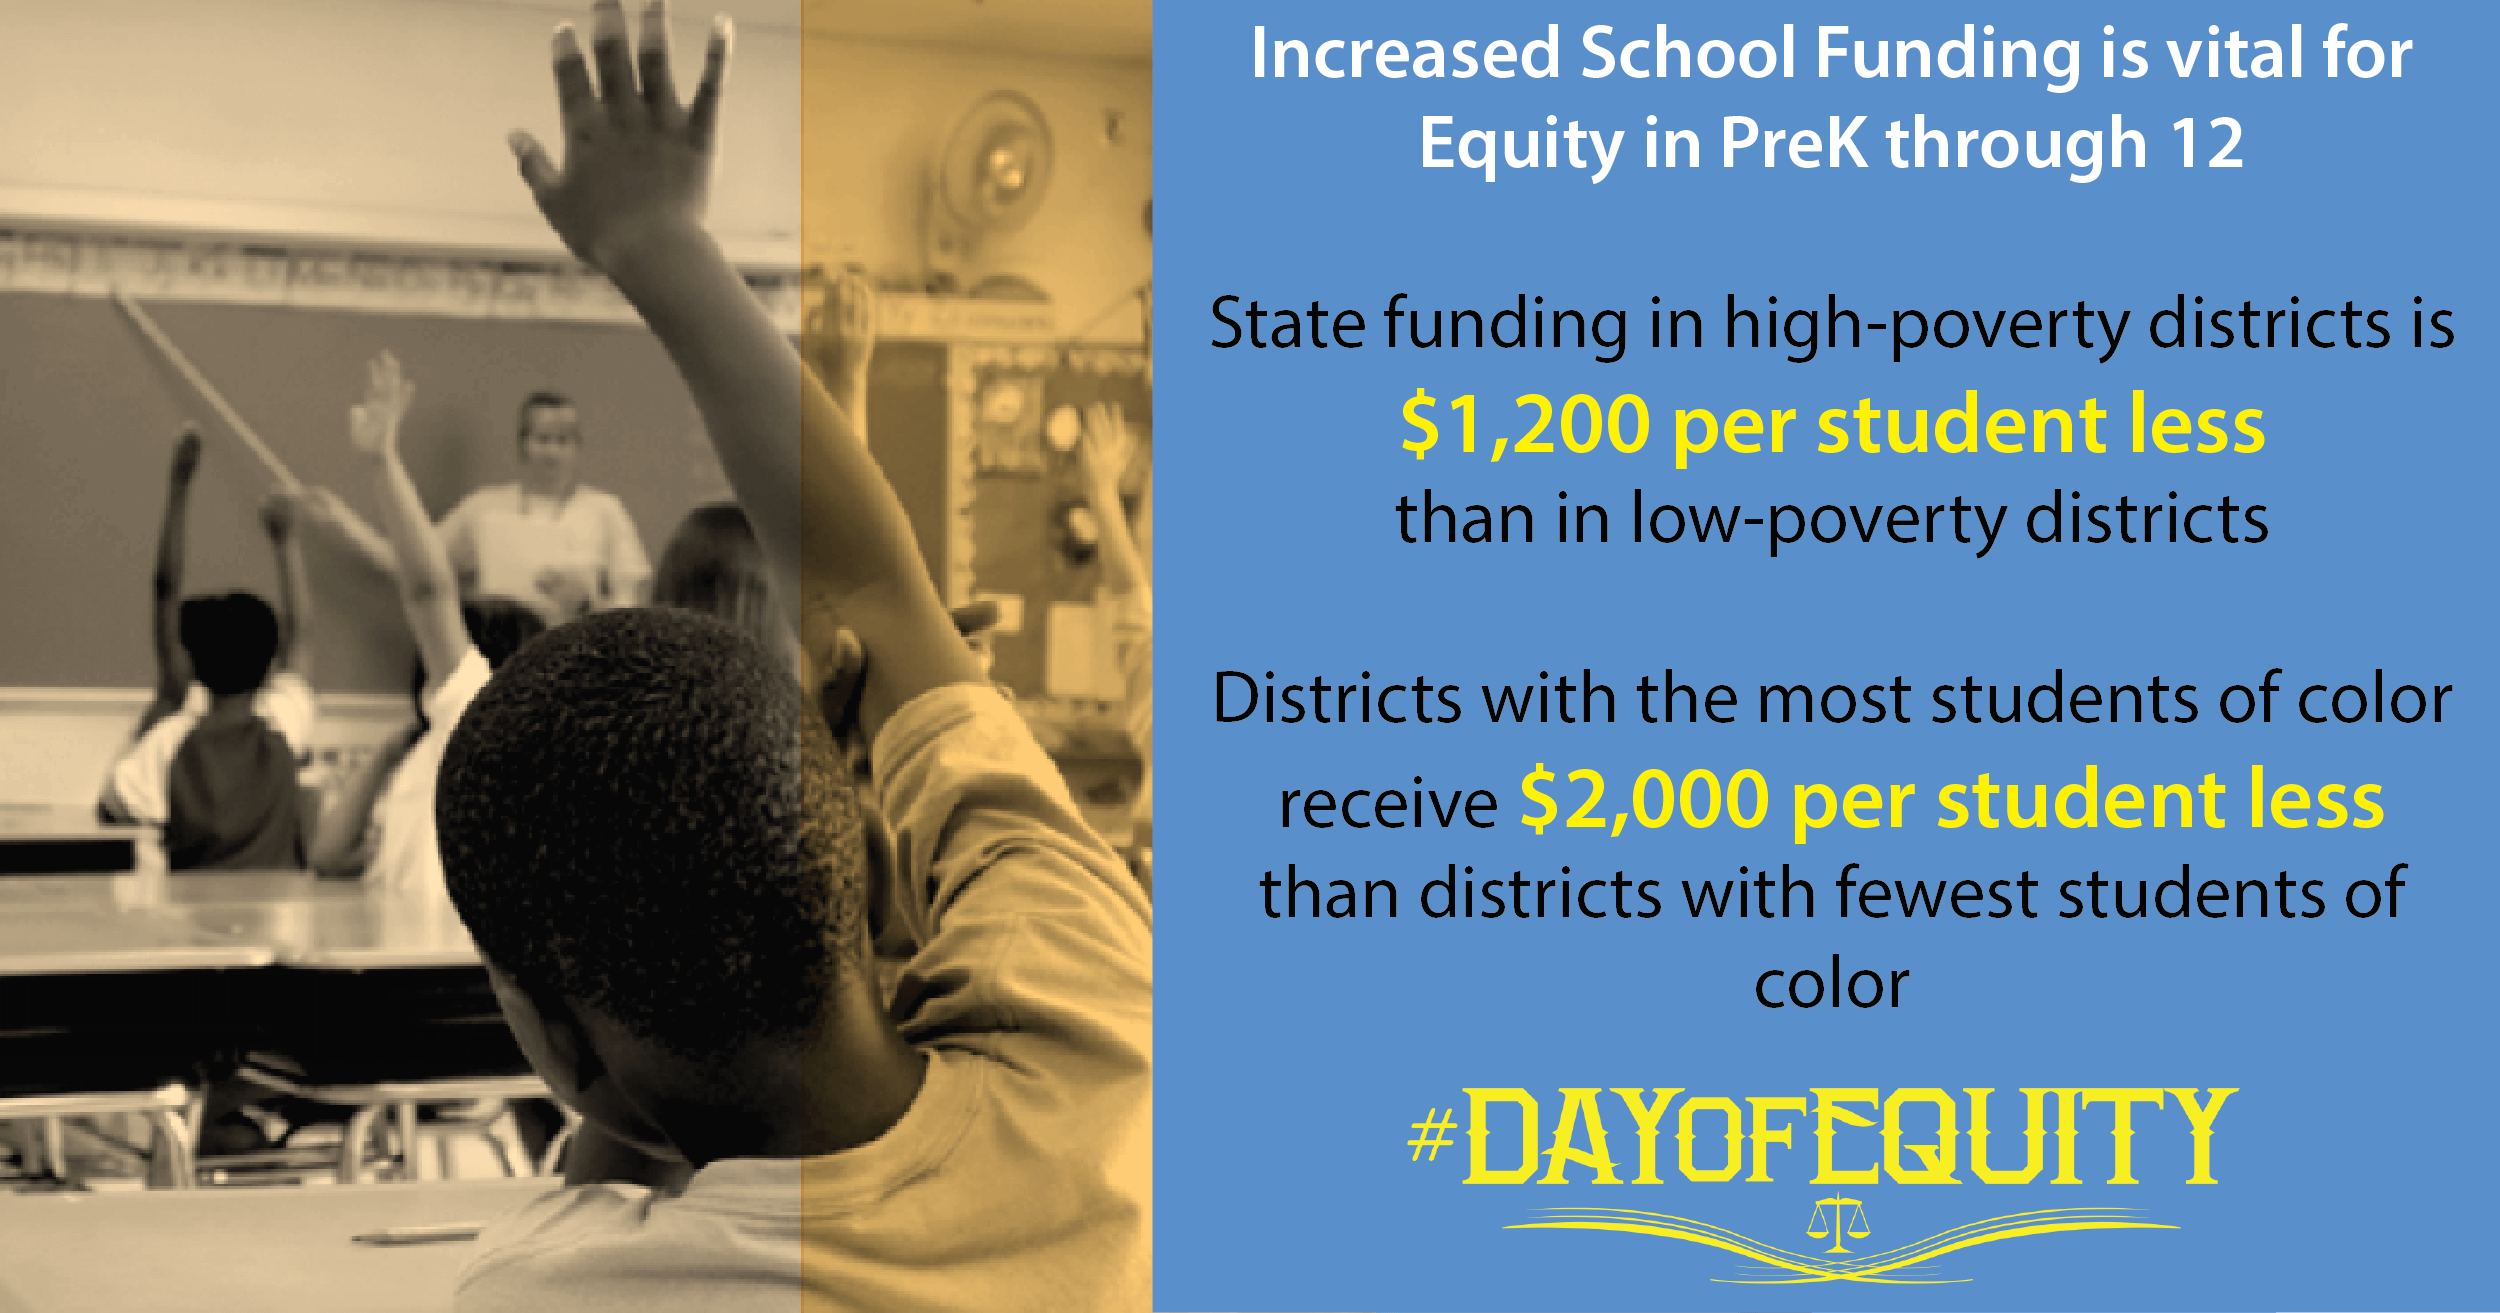 Join the Marguerite Casey Foundation's #DayofEquity campaign